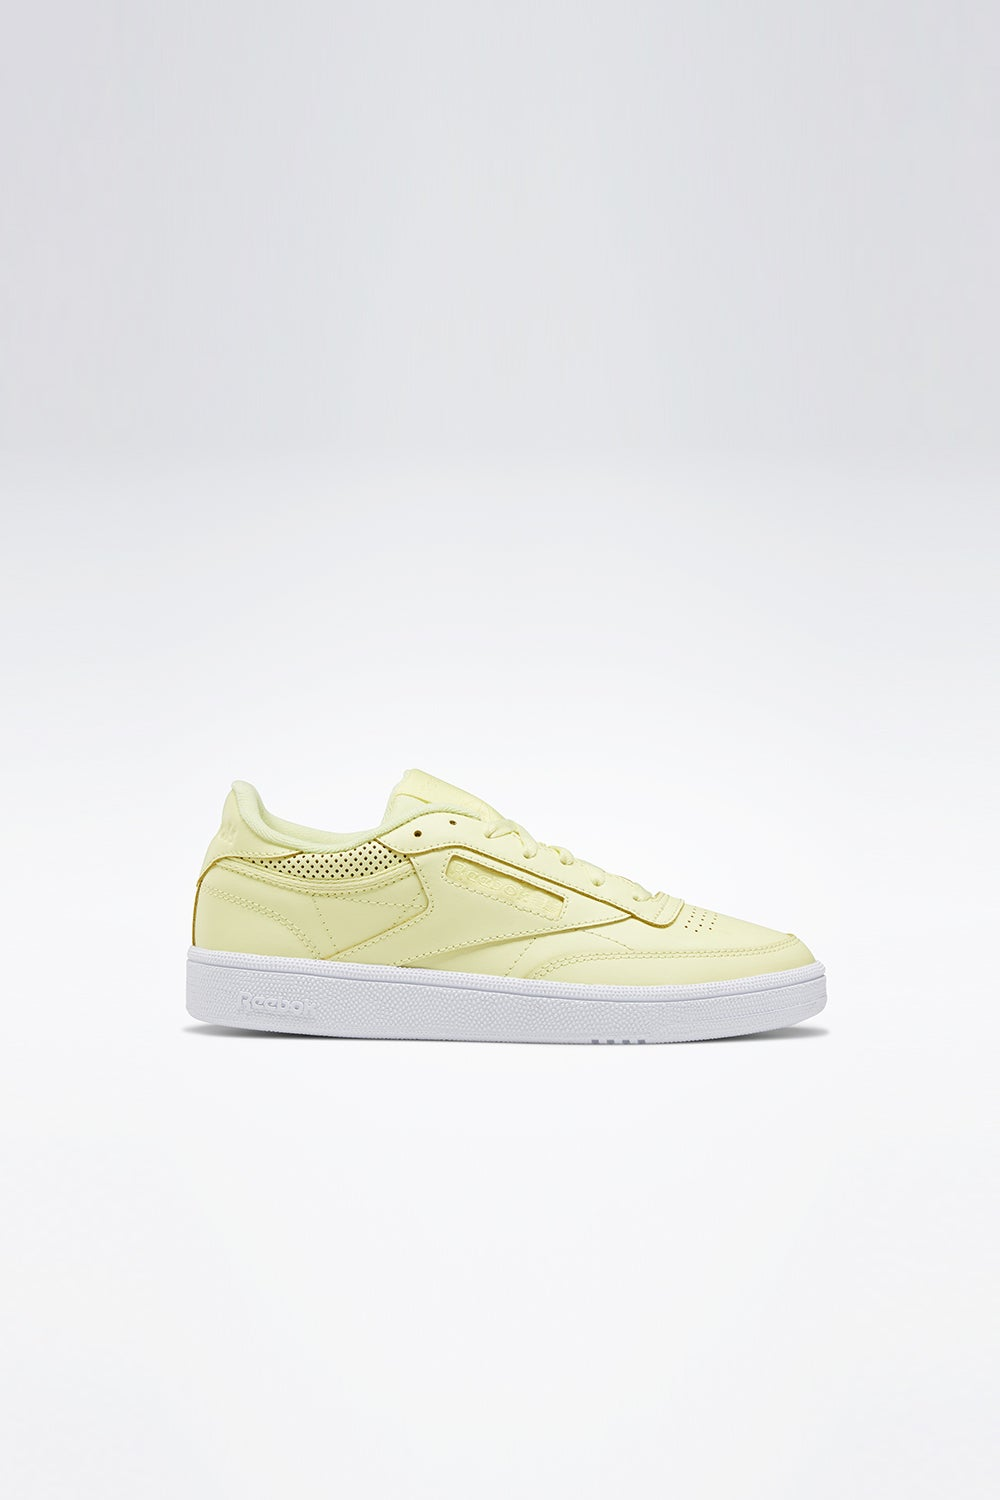 Reebok Club C 85 Lemon Glow/White